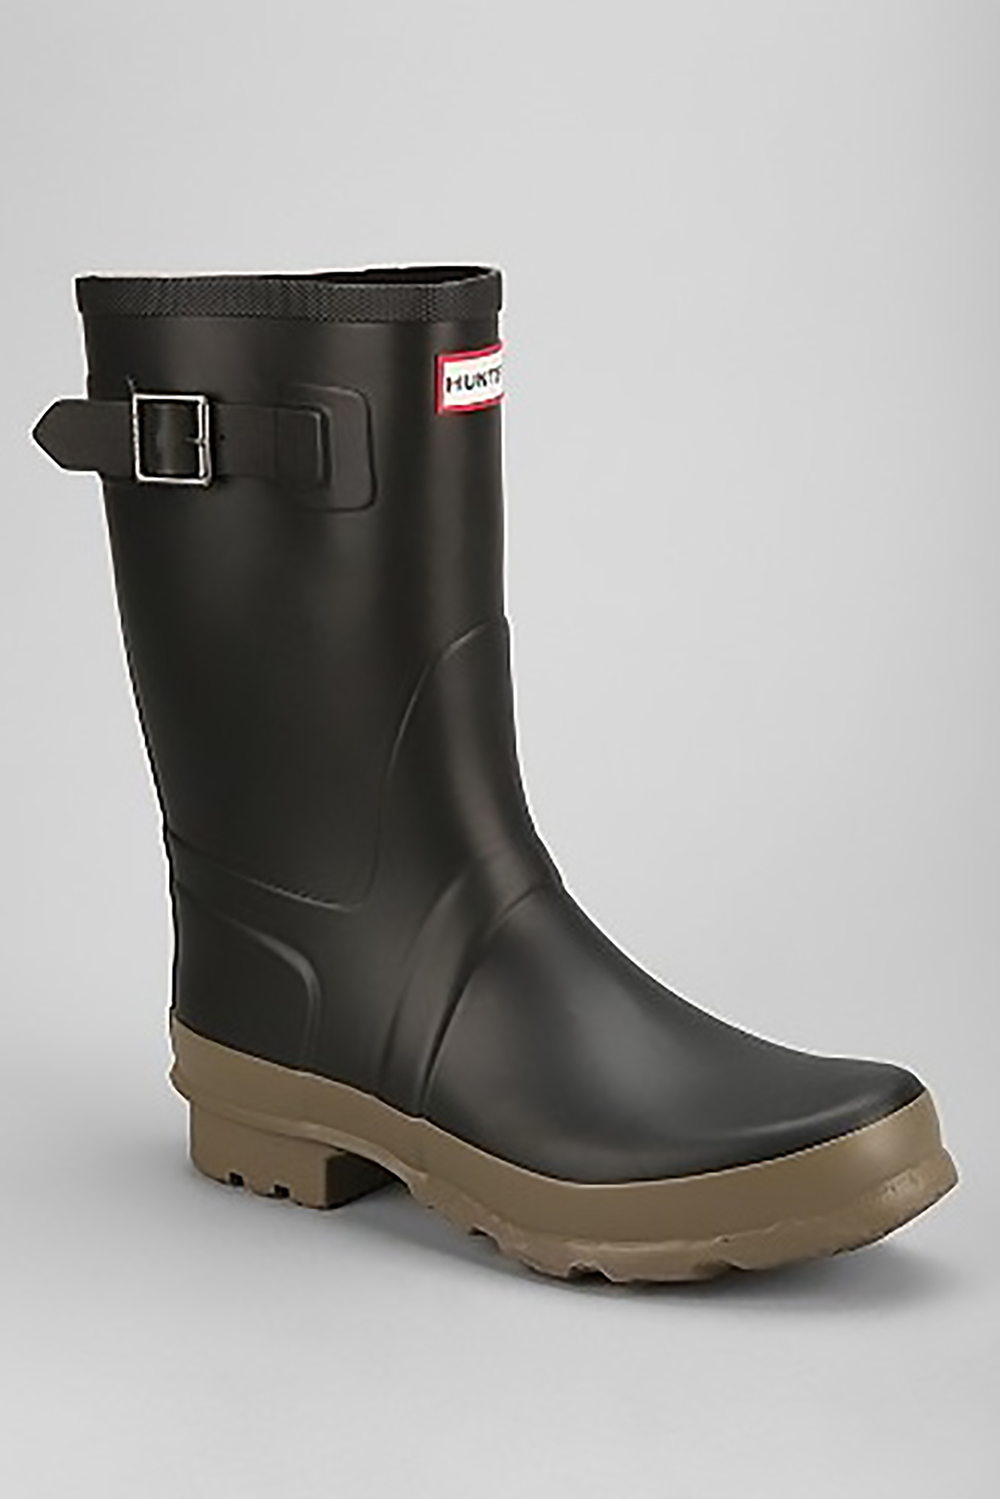 urban outfitters hunter original short buckle rain boot rain gear 1500.jpg